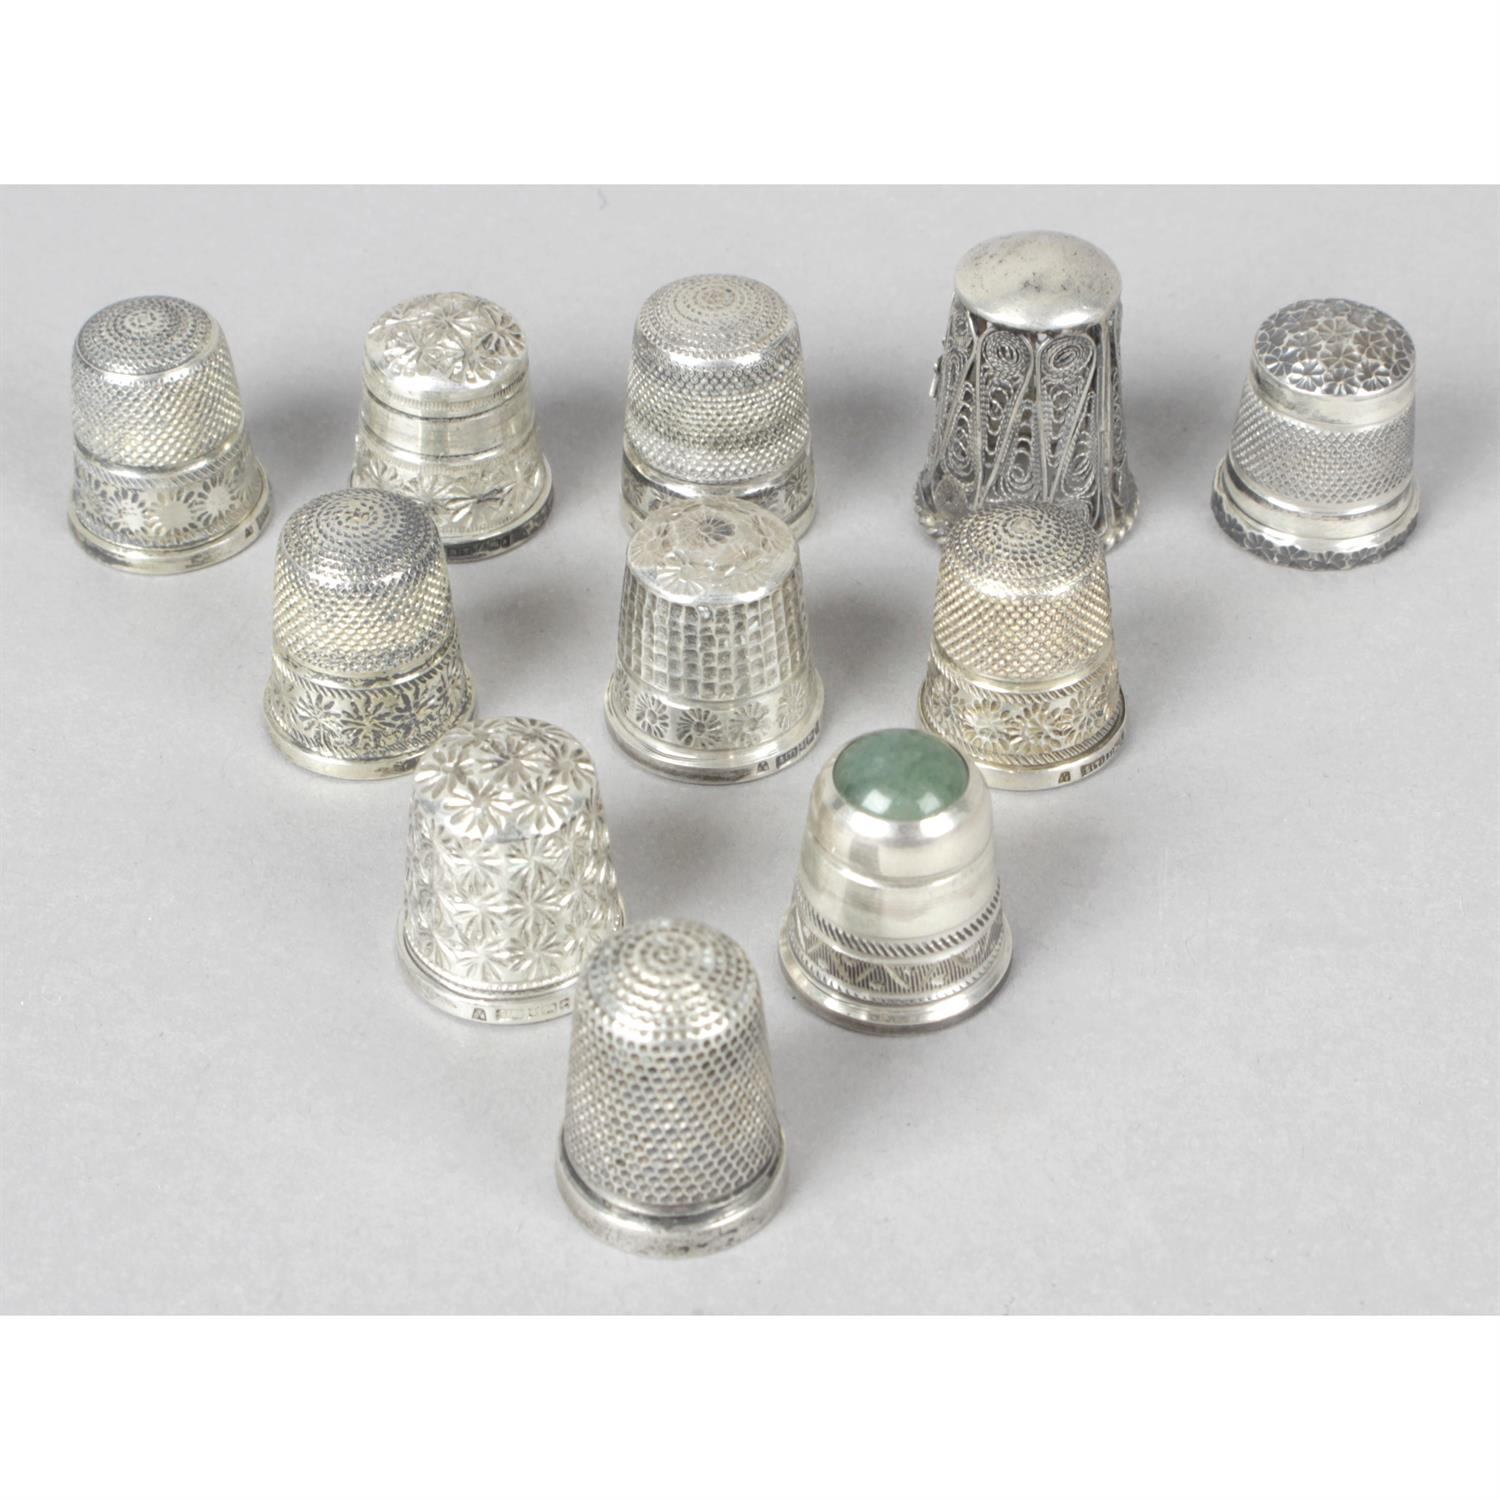 A collection of eleven silver sewing thimbles.